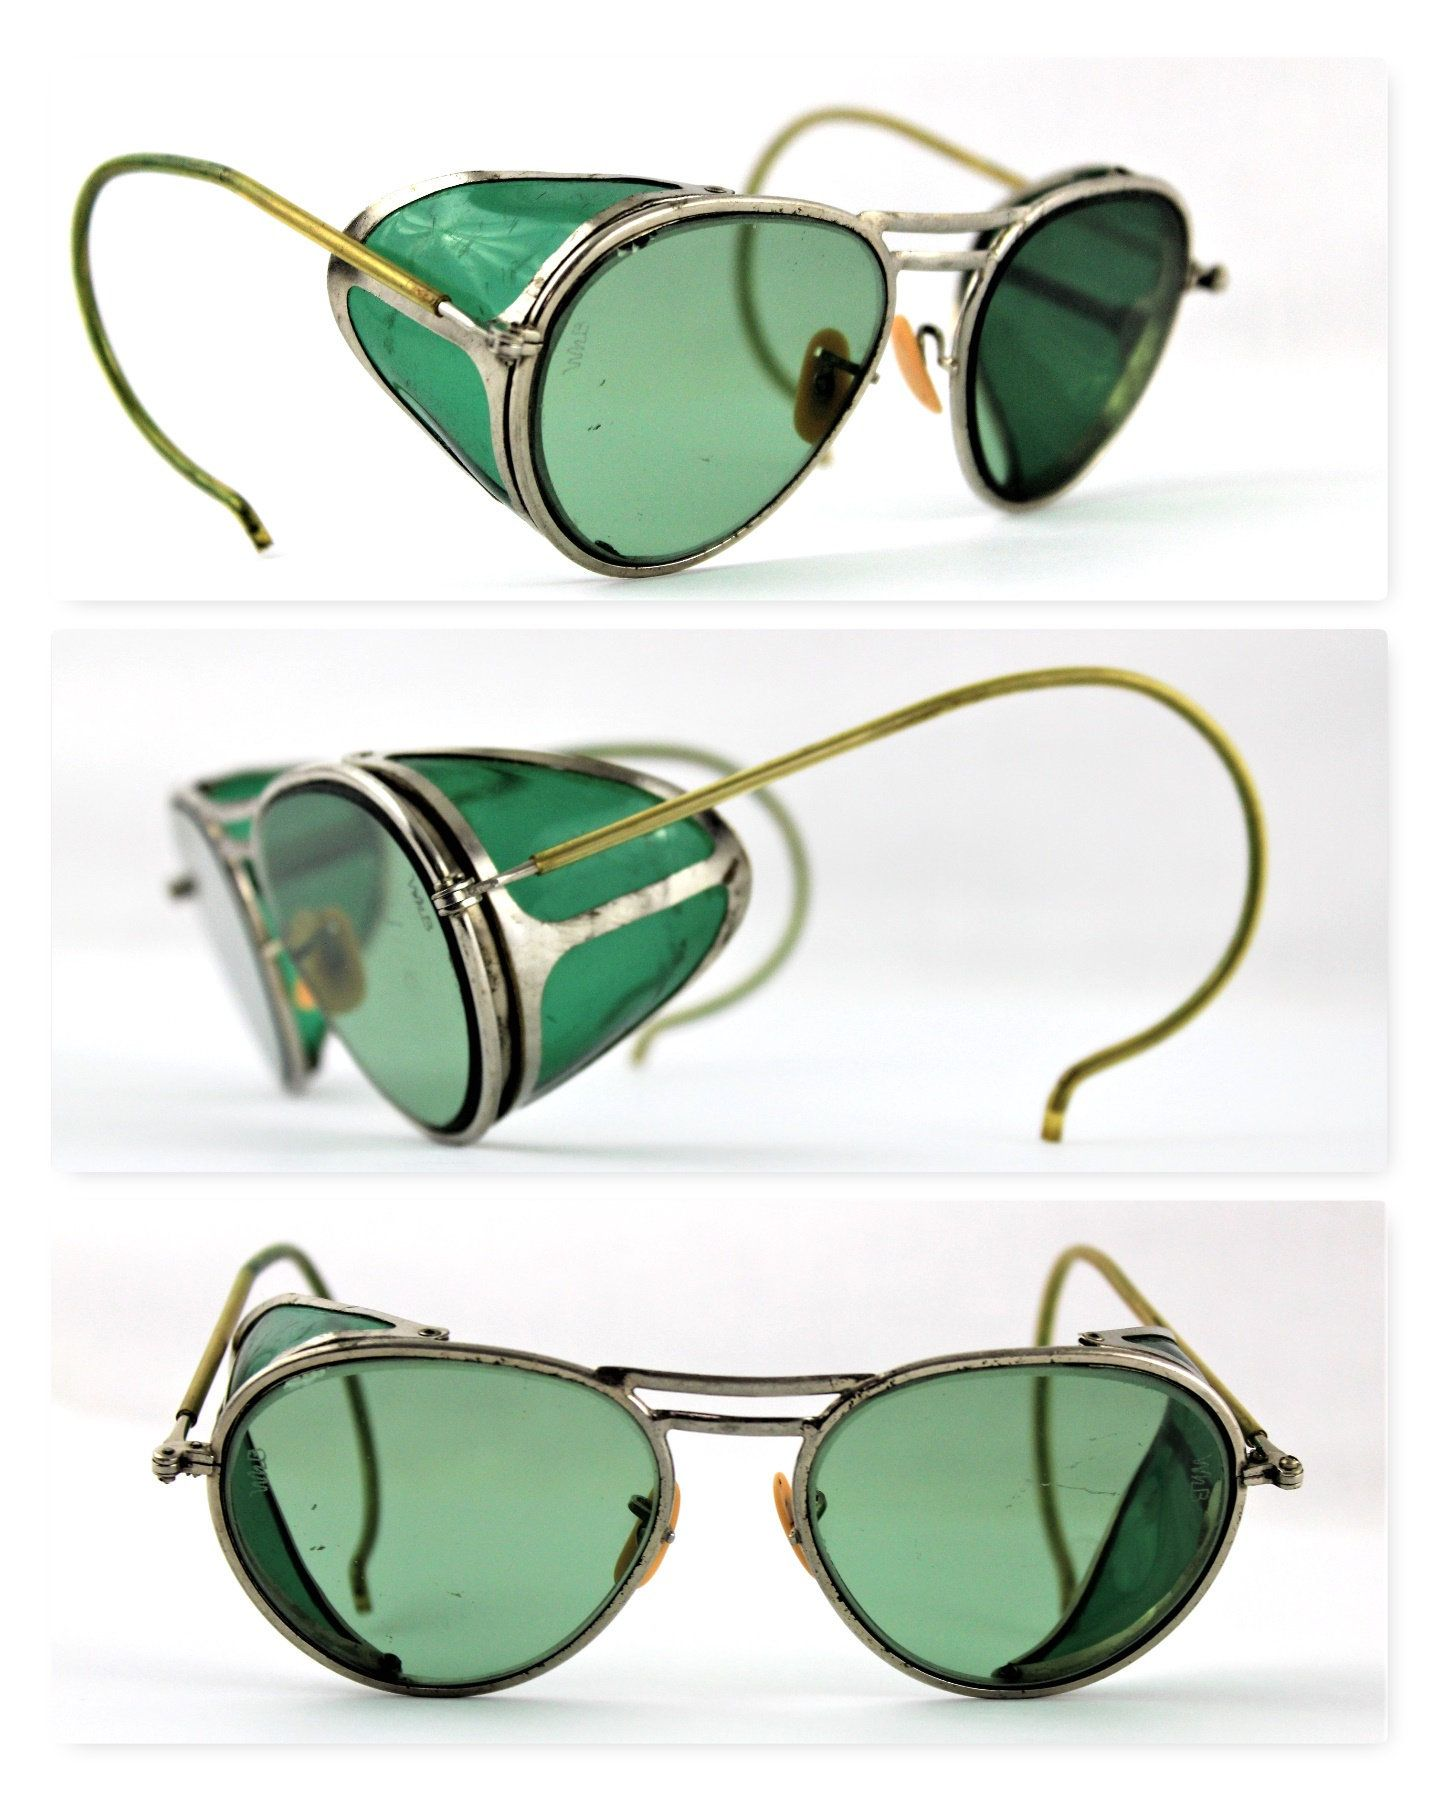 New accessory for doctorssafety glasses Vintage 1940s